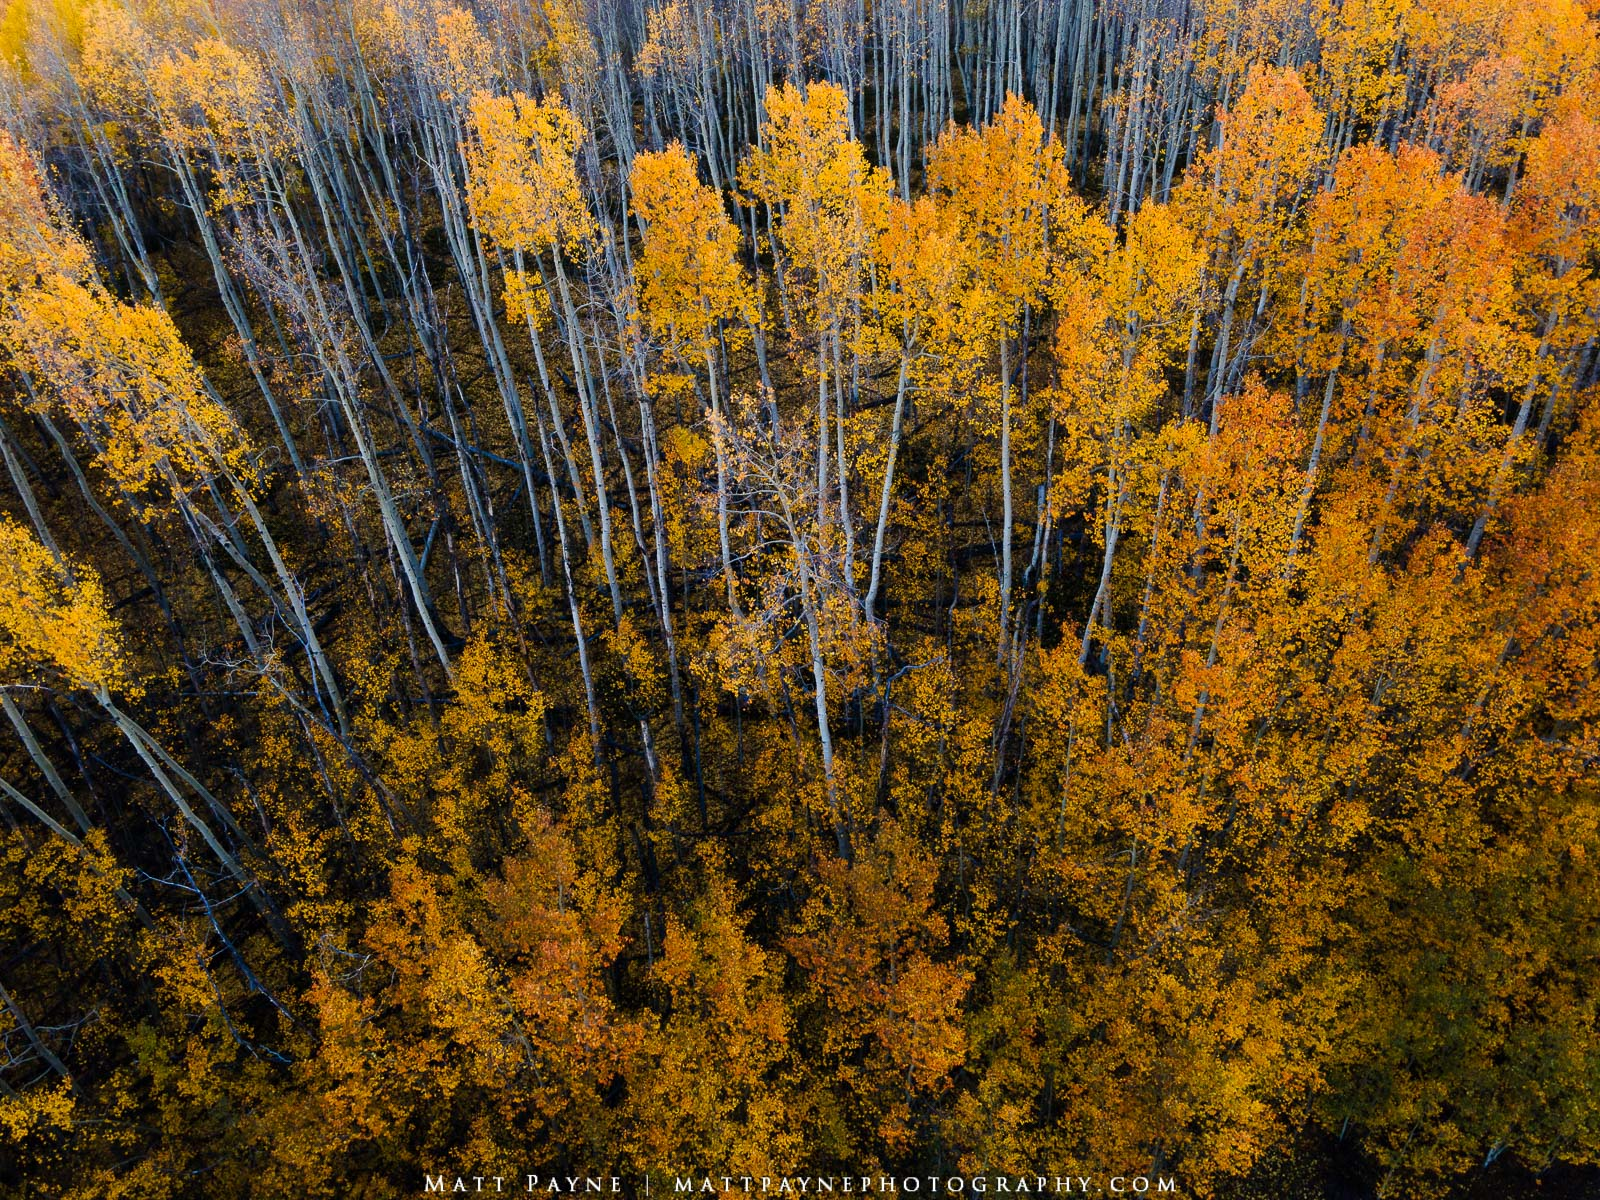 A view of an aspen forest during fall colors in Colorado. Photo © copyright by Matt Payne.